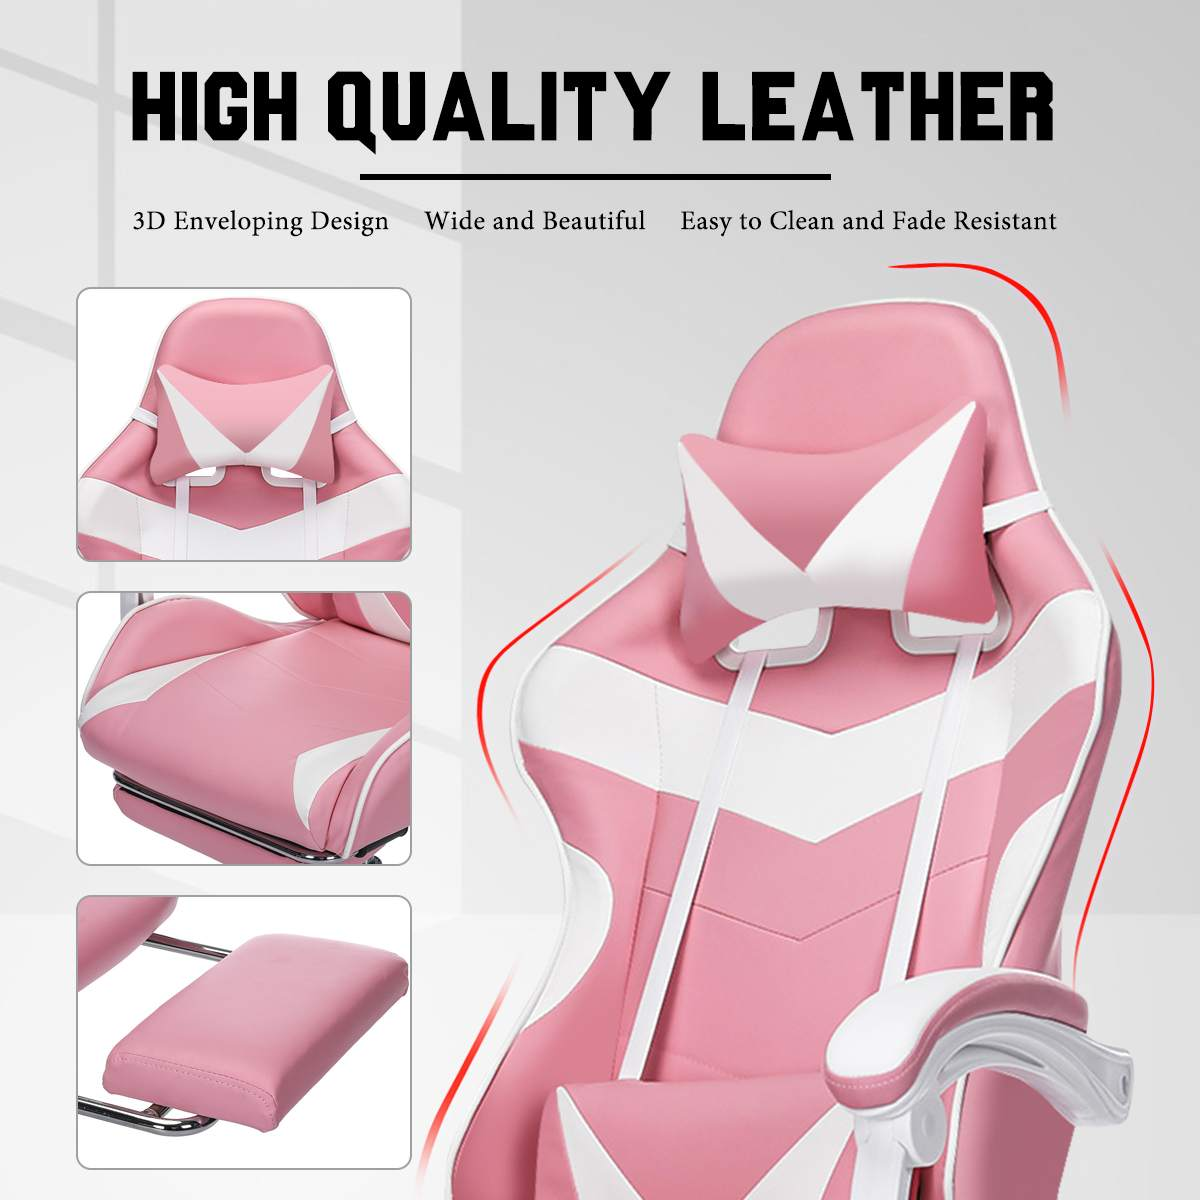 H0f45ed93f6cd4c8ebf388fba3df5ca37I - Office Computer Chair WCG Gaming Chair Pink Silla Leather Desk Chair Internet Cafe Gamer Chair Household Armchair Office Chair